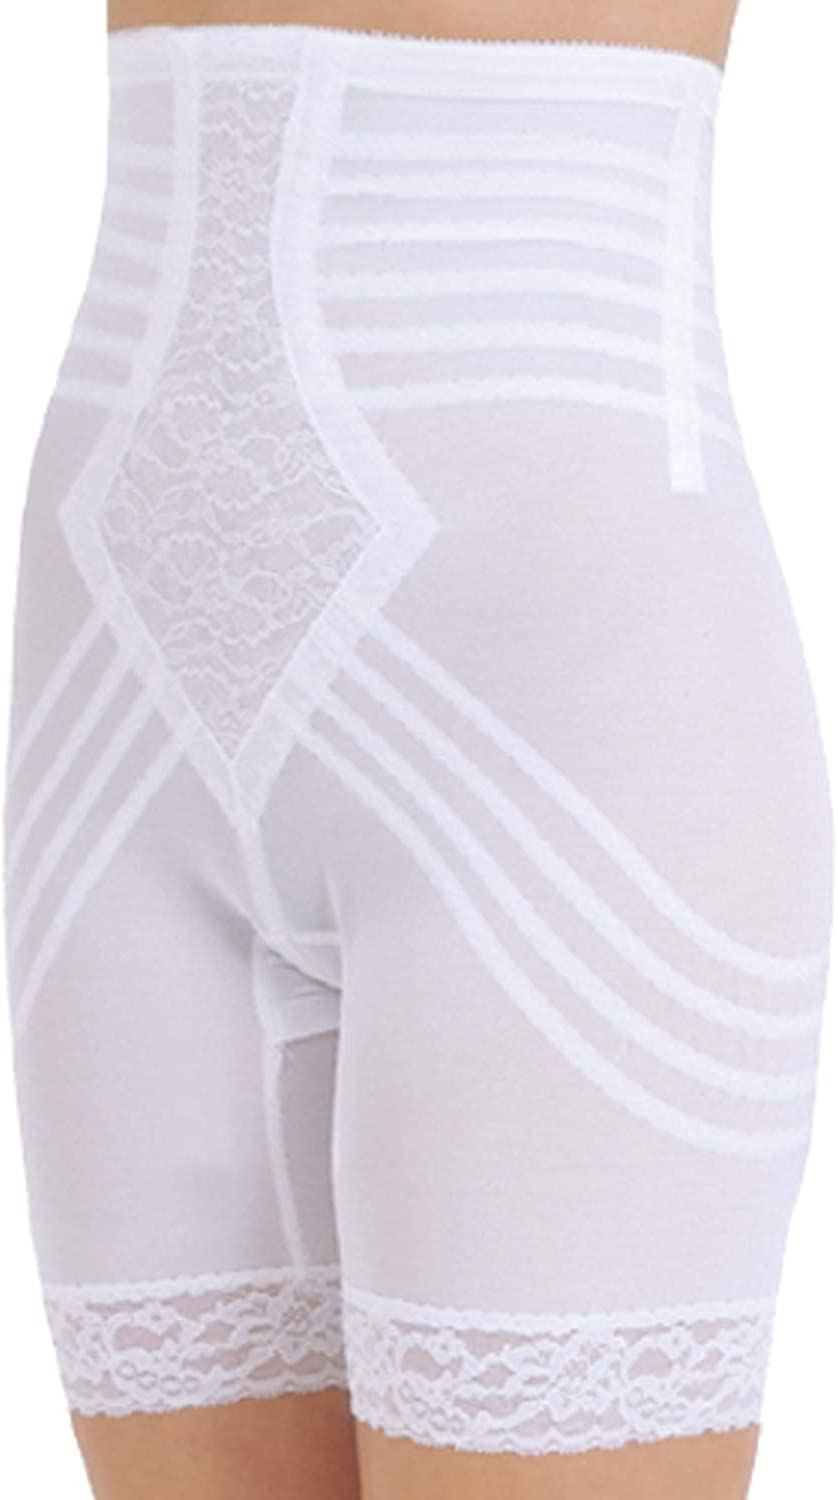 Rago New mail order Style 6209 - High-Waist Guarant Firm Memphis Mall Thigh Shaping. Slimmer